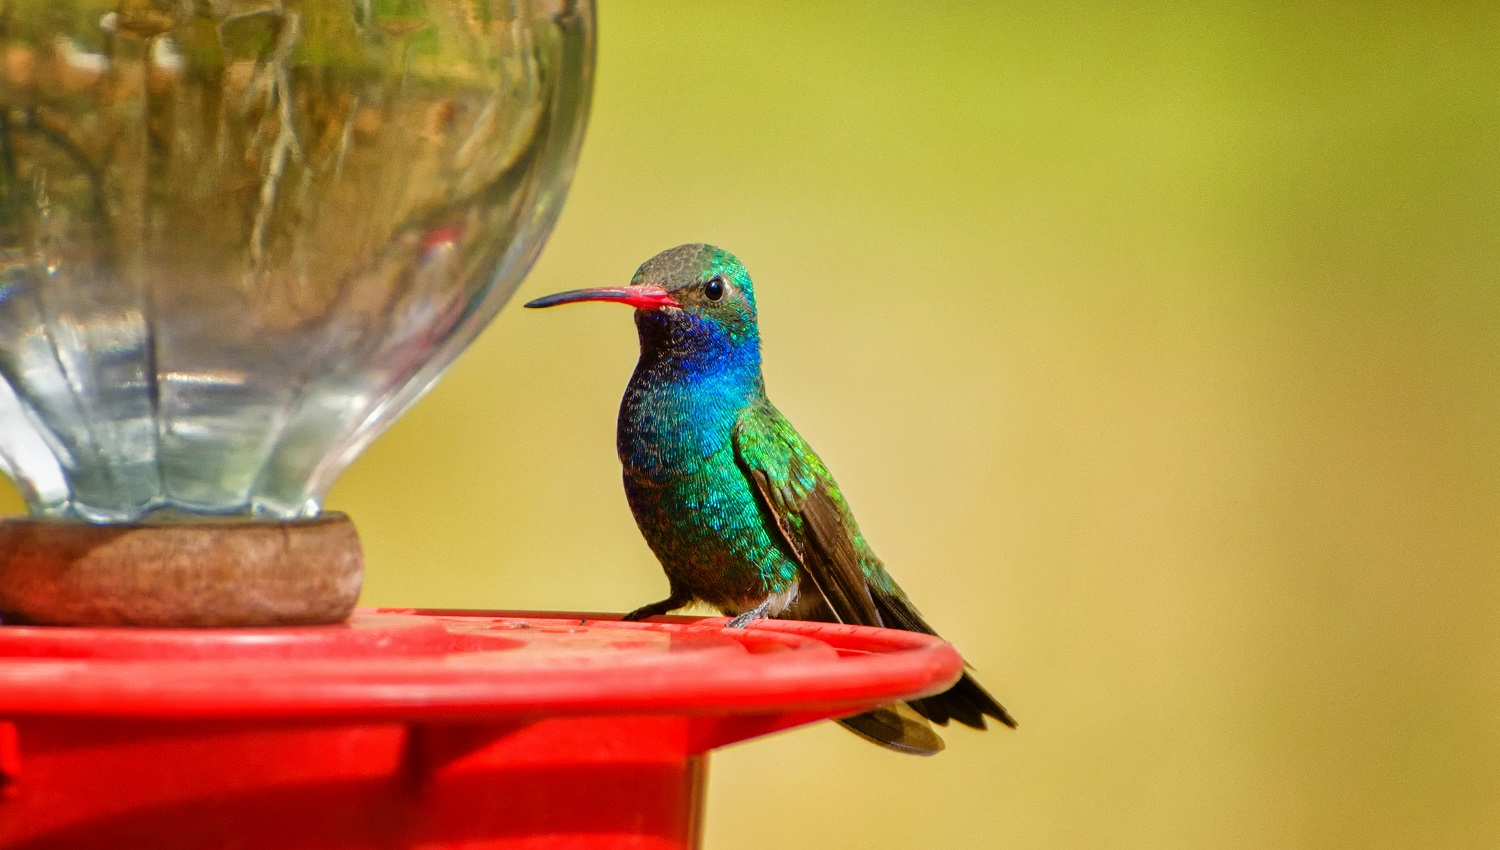 Broad-billed Hummingbird at a Feeder on a Yellow Background